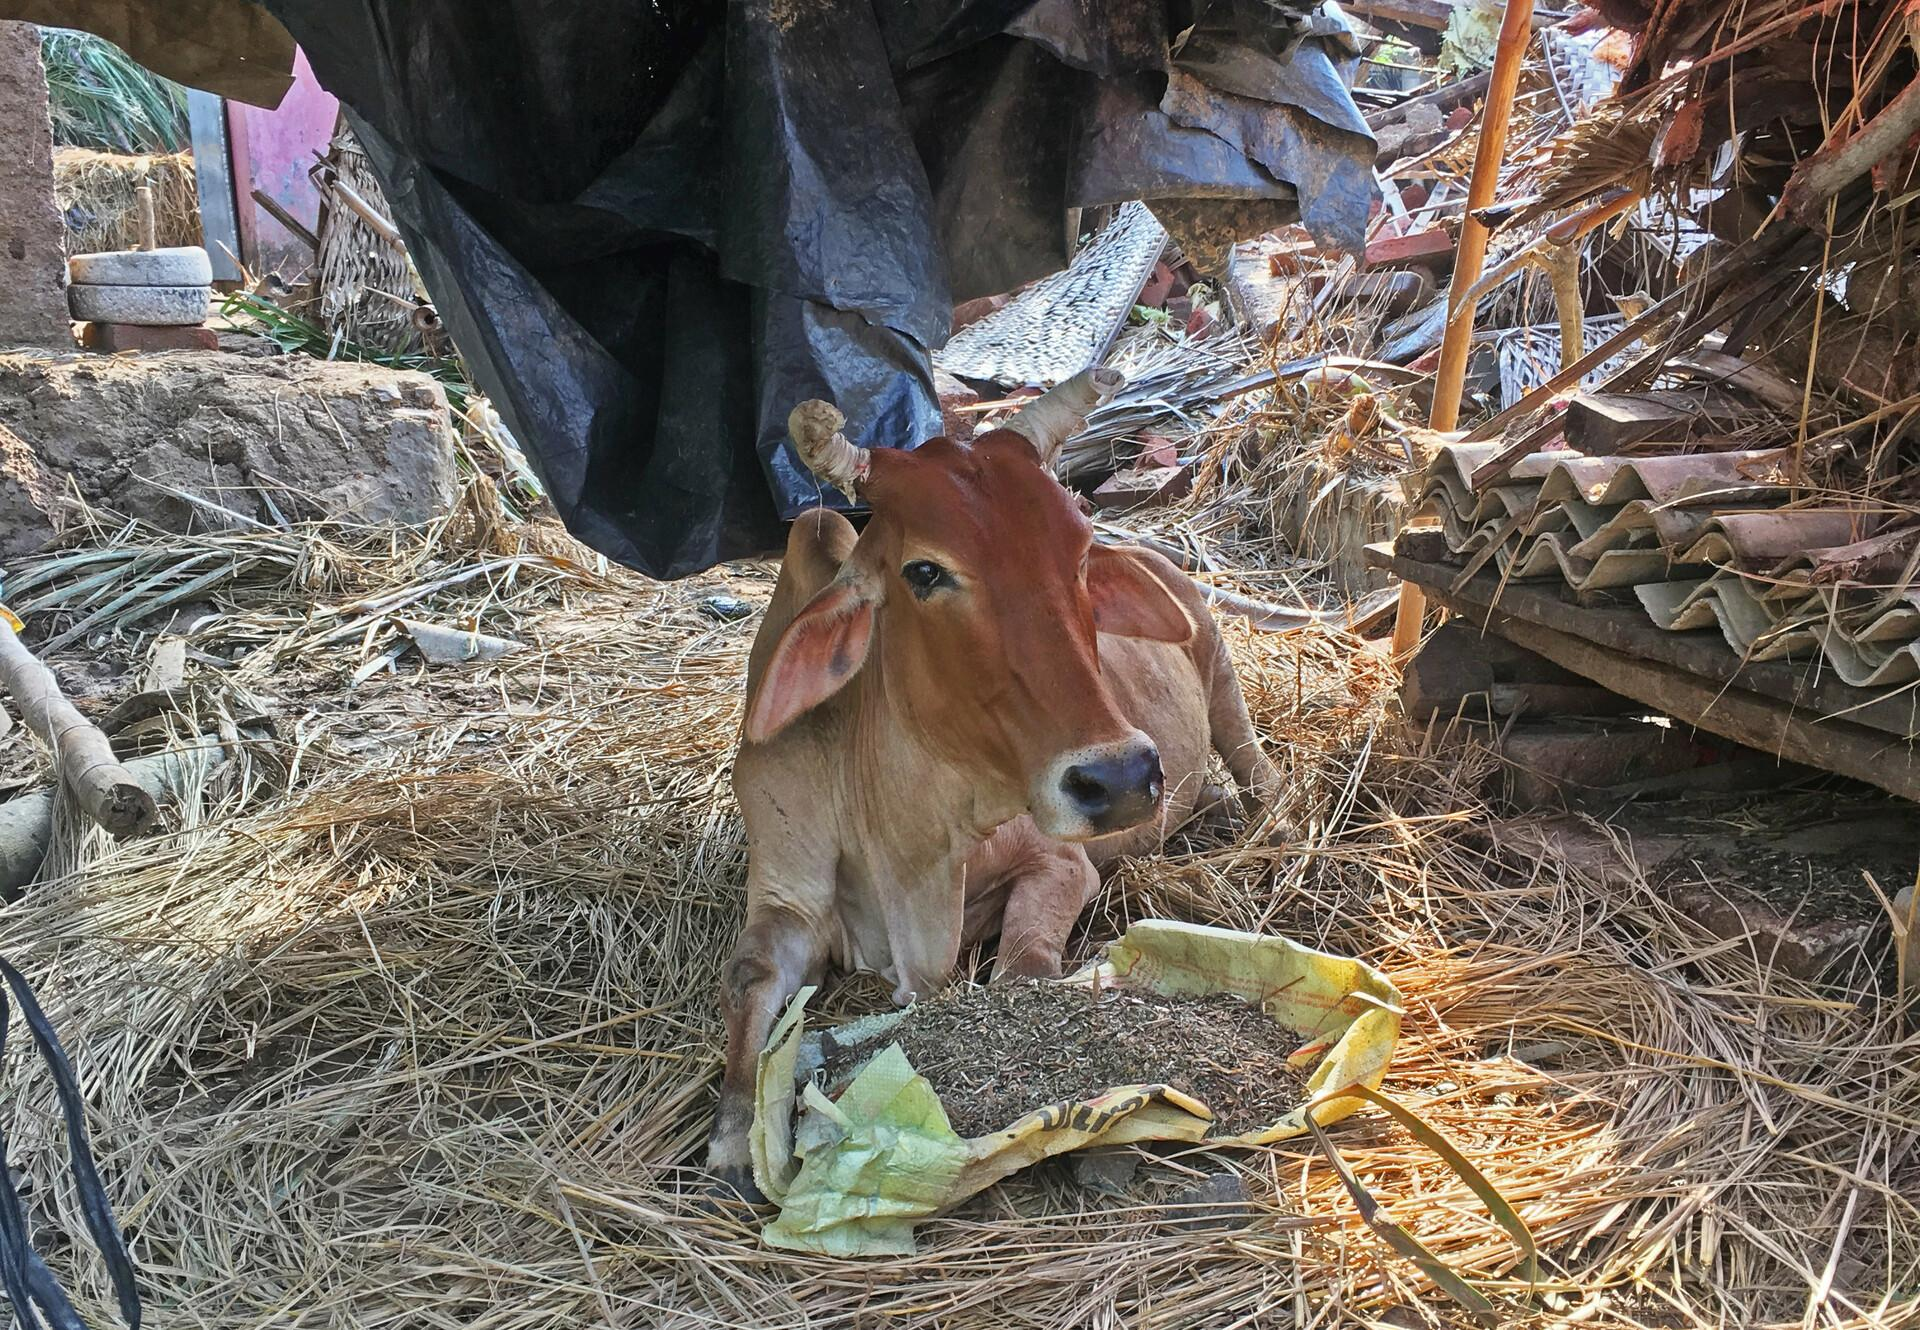 Cow receiving treatment in India